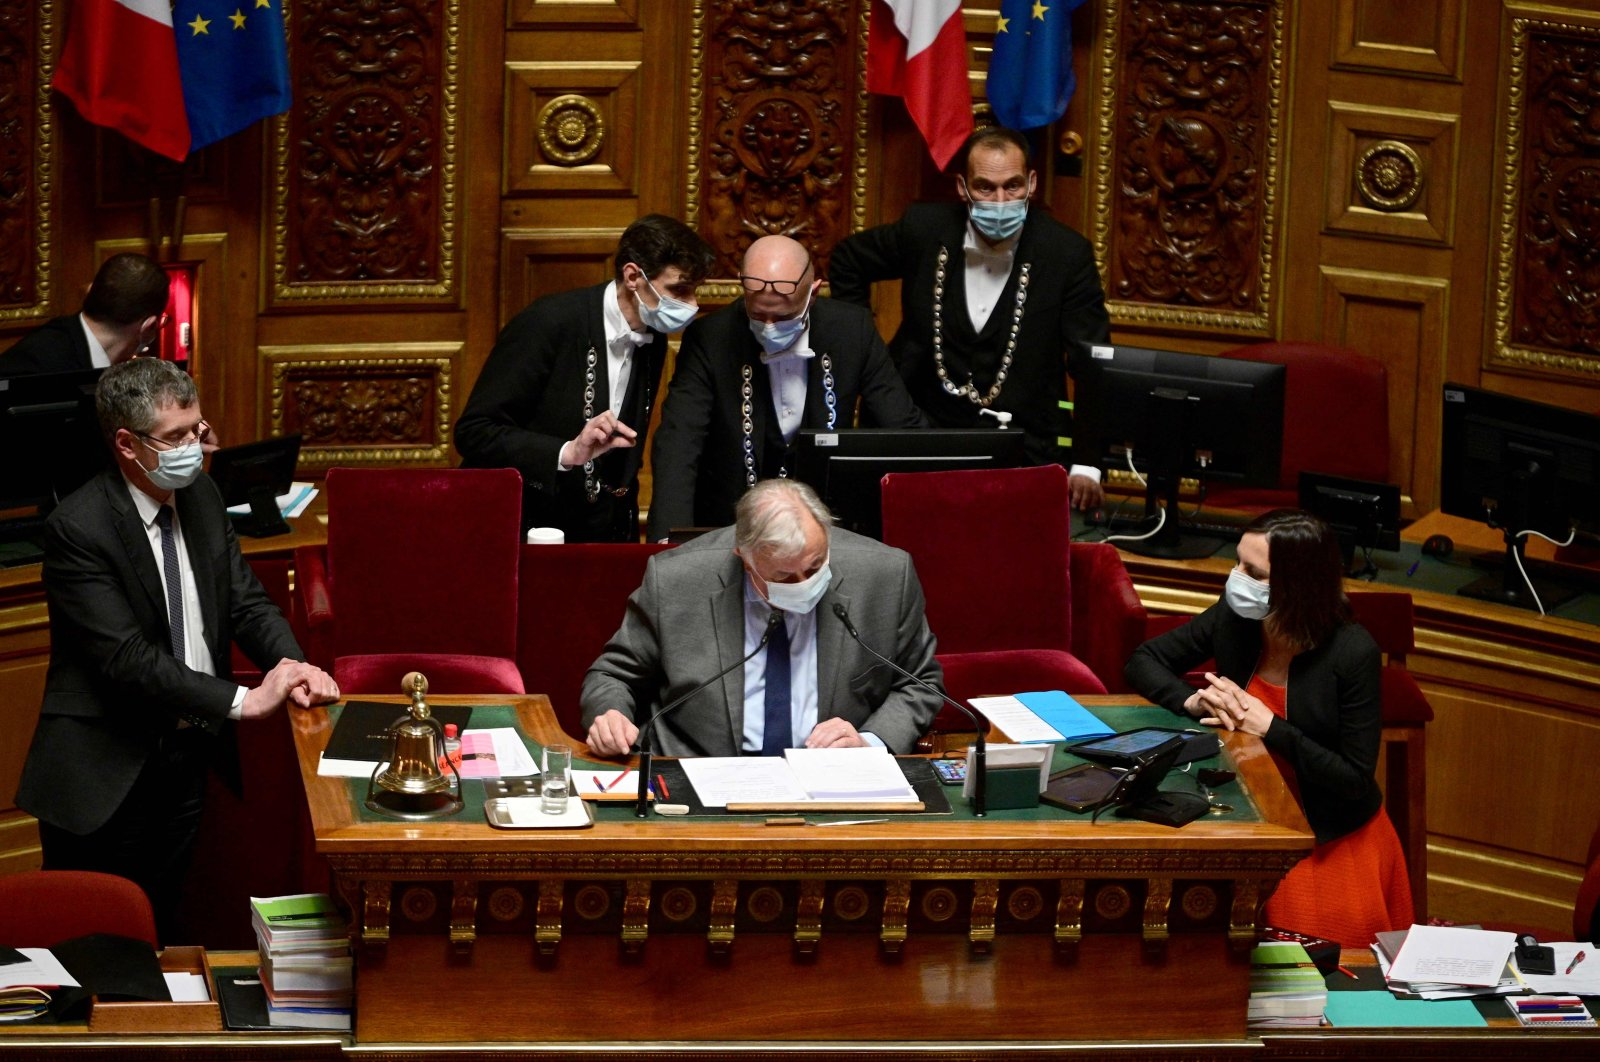 French Senate President Gerard Larcher chairs a session at the French Senate, Paris, France, April 1, 2021. (AFP Photo)